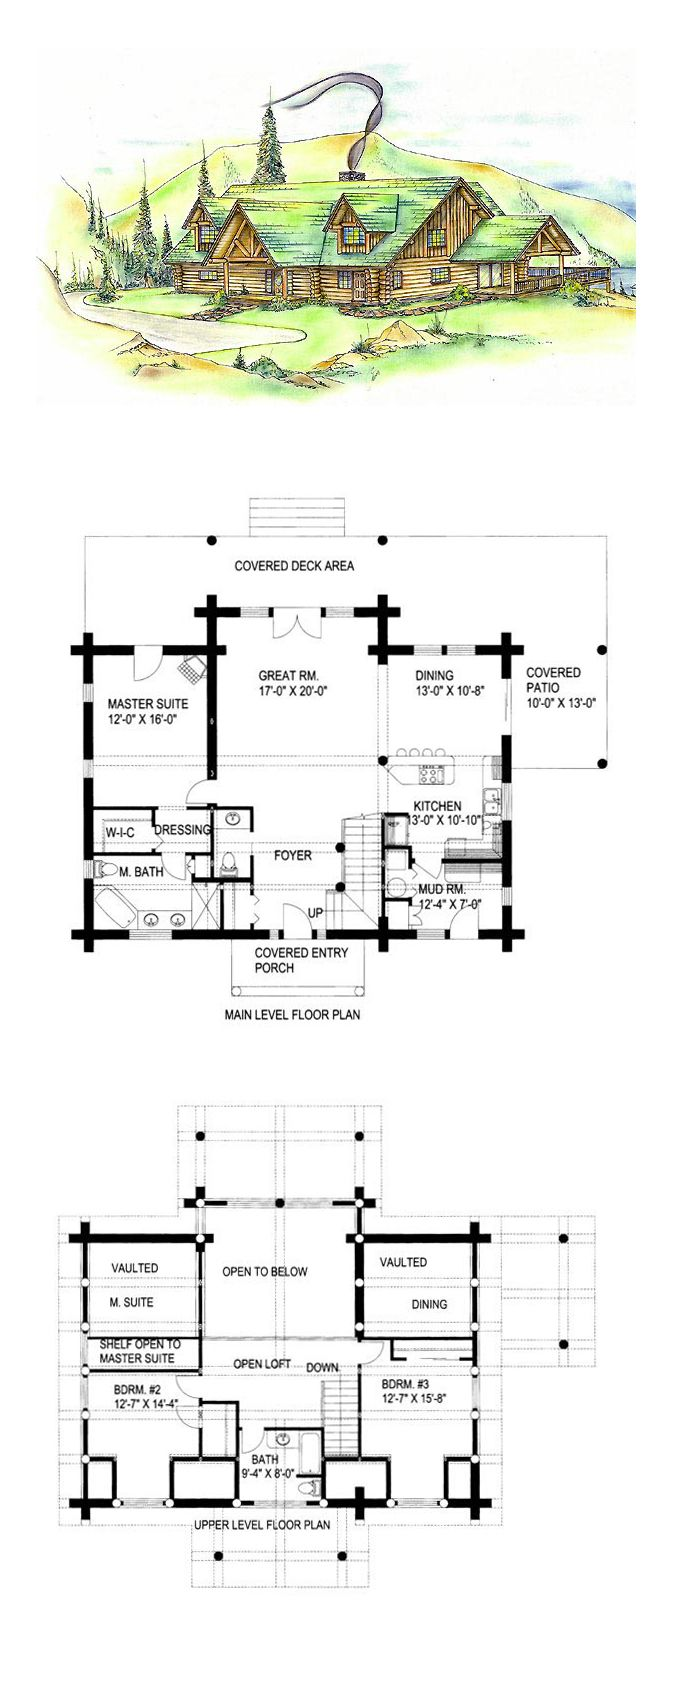 log cabin style cool house plan id chp 45372 total living area